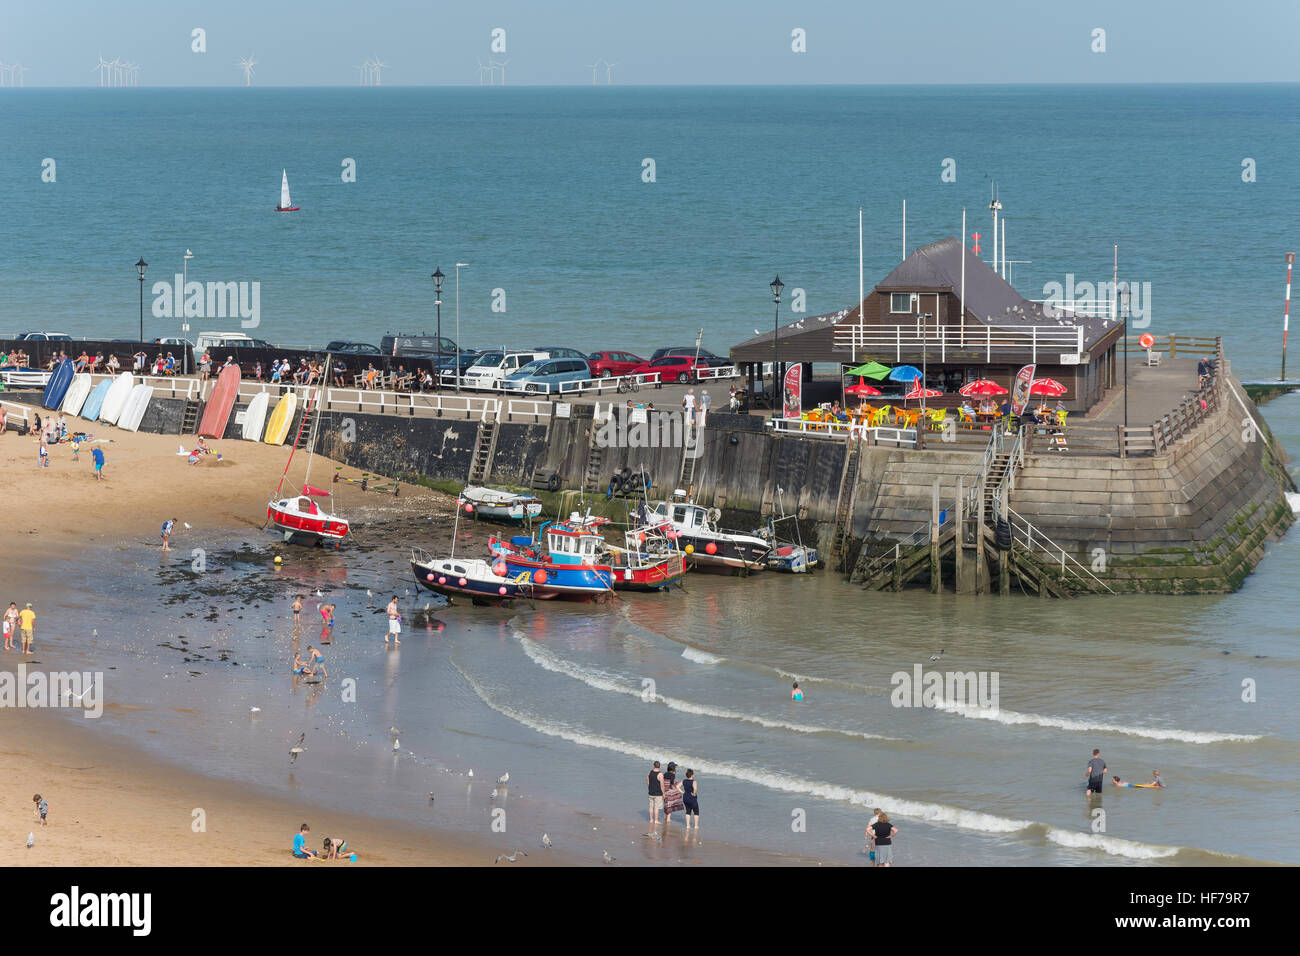 The Pier, Viking Bay Beach, Broadstairs, Isle of Thanet, Thanet District, Kent, England, United Kingdom - Stock Image